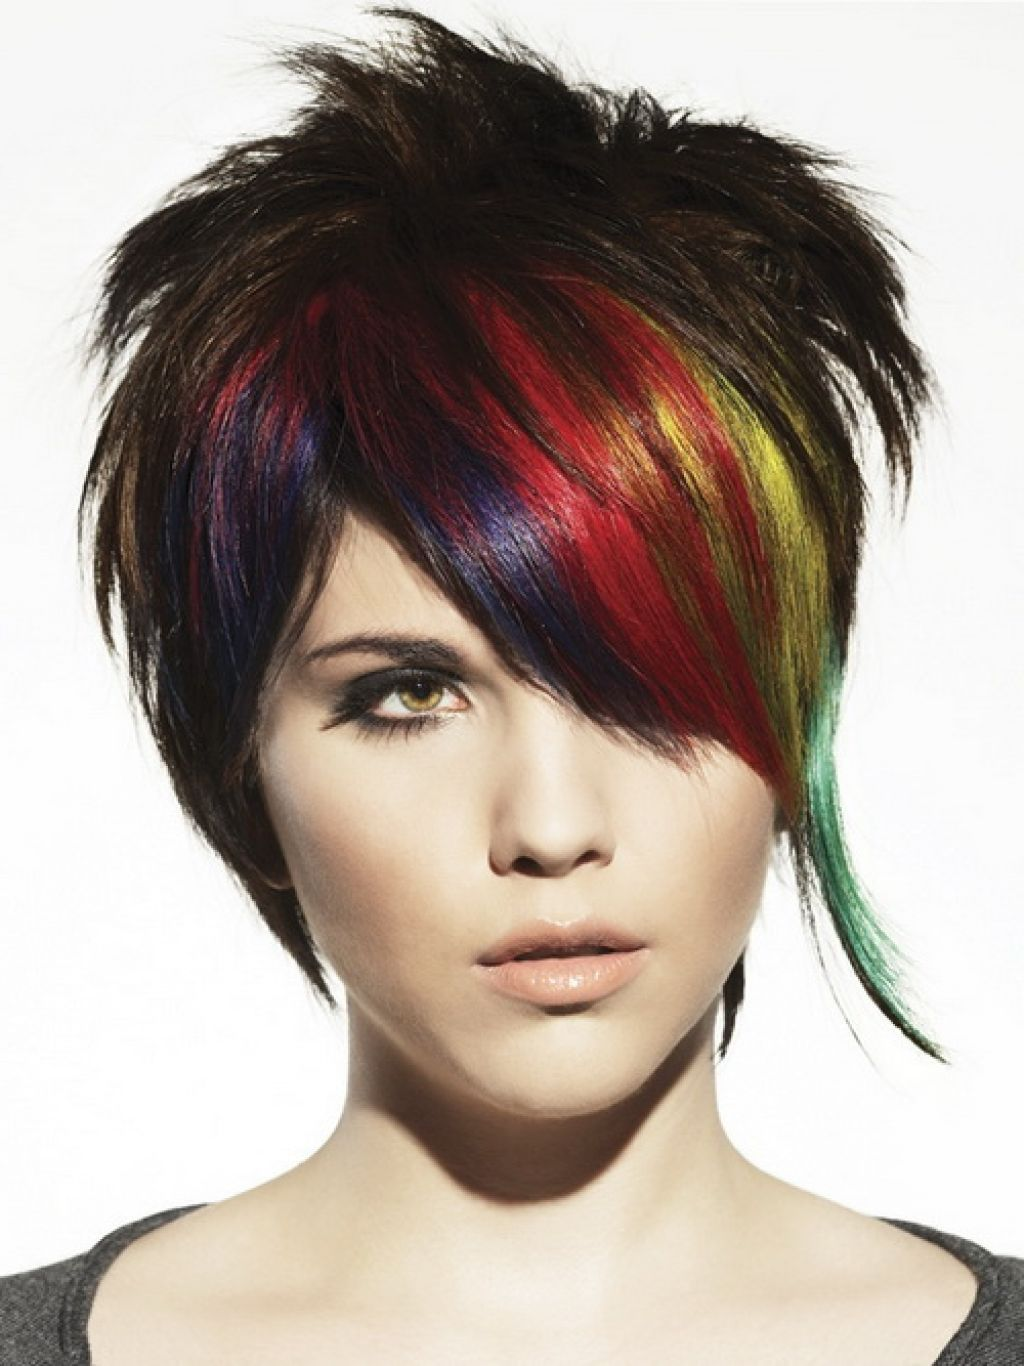 color punk rock hairstyles for women | bushwhacked | pinterest